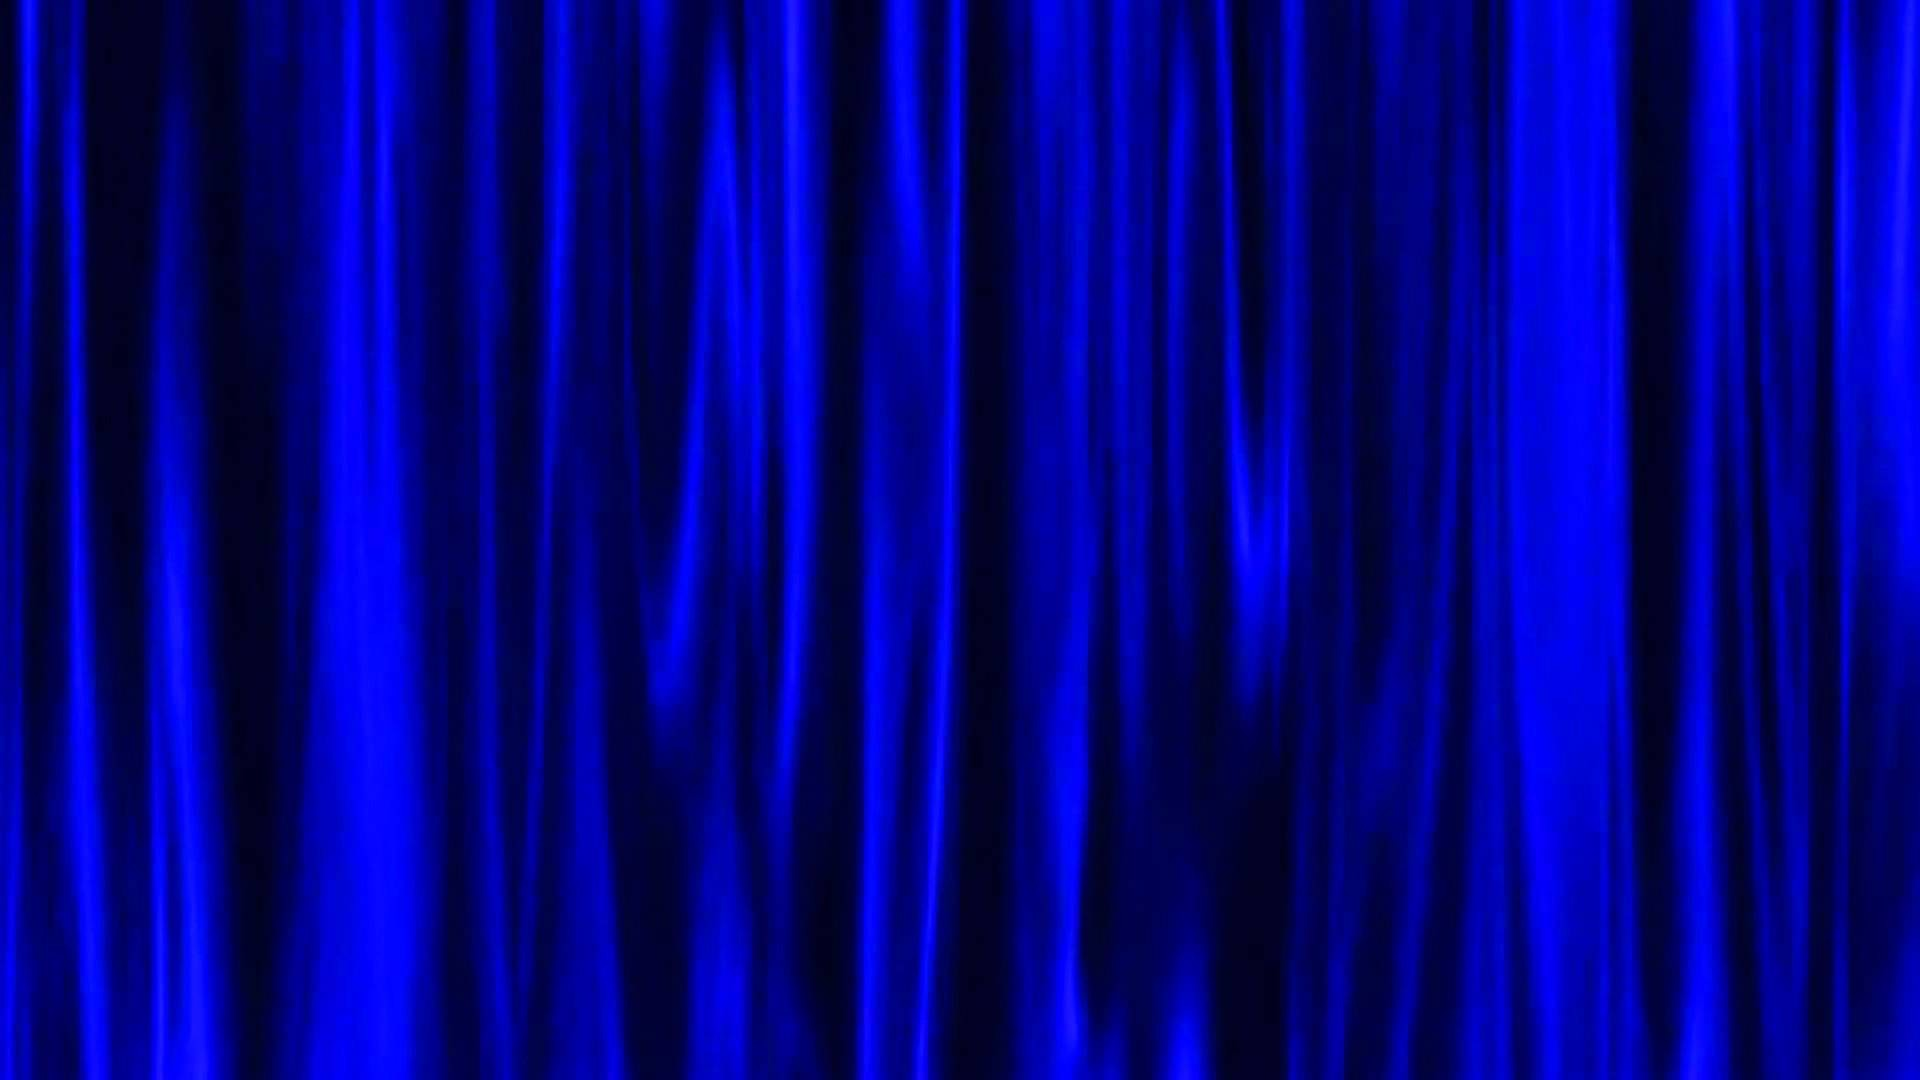 Royal Blue background  Download free HD wallpapers for